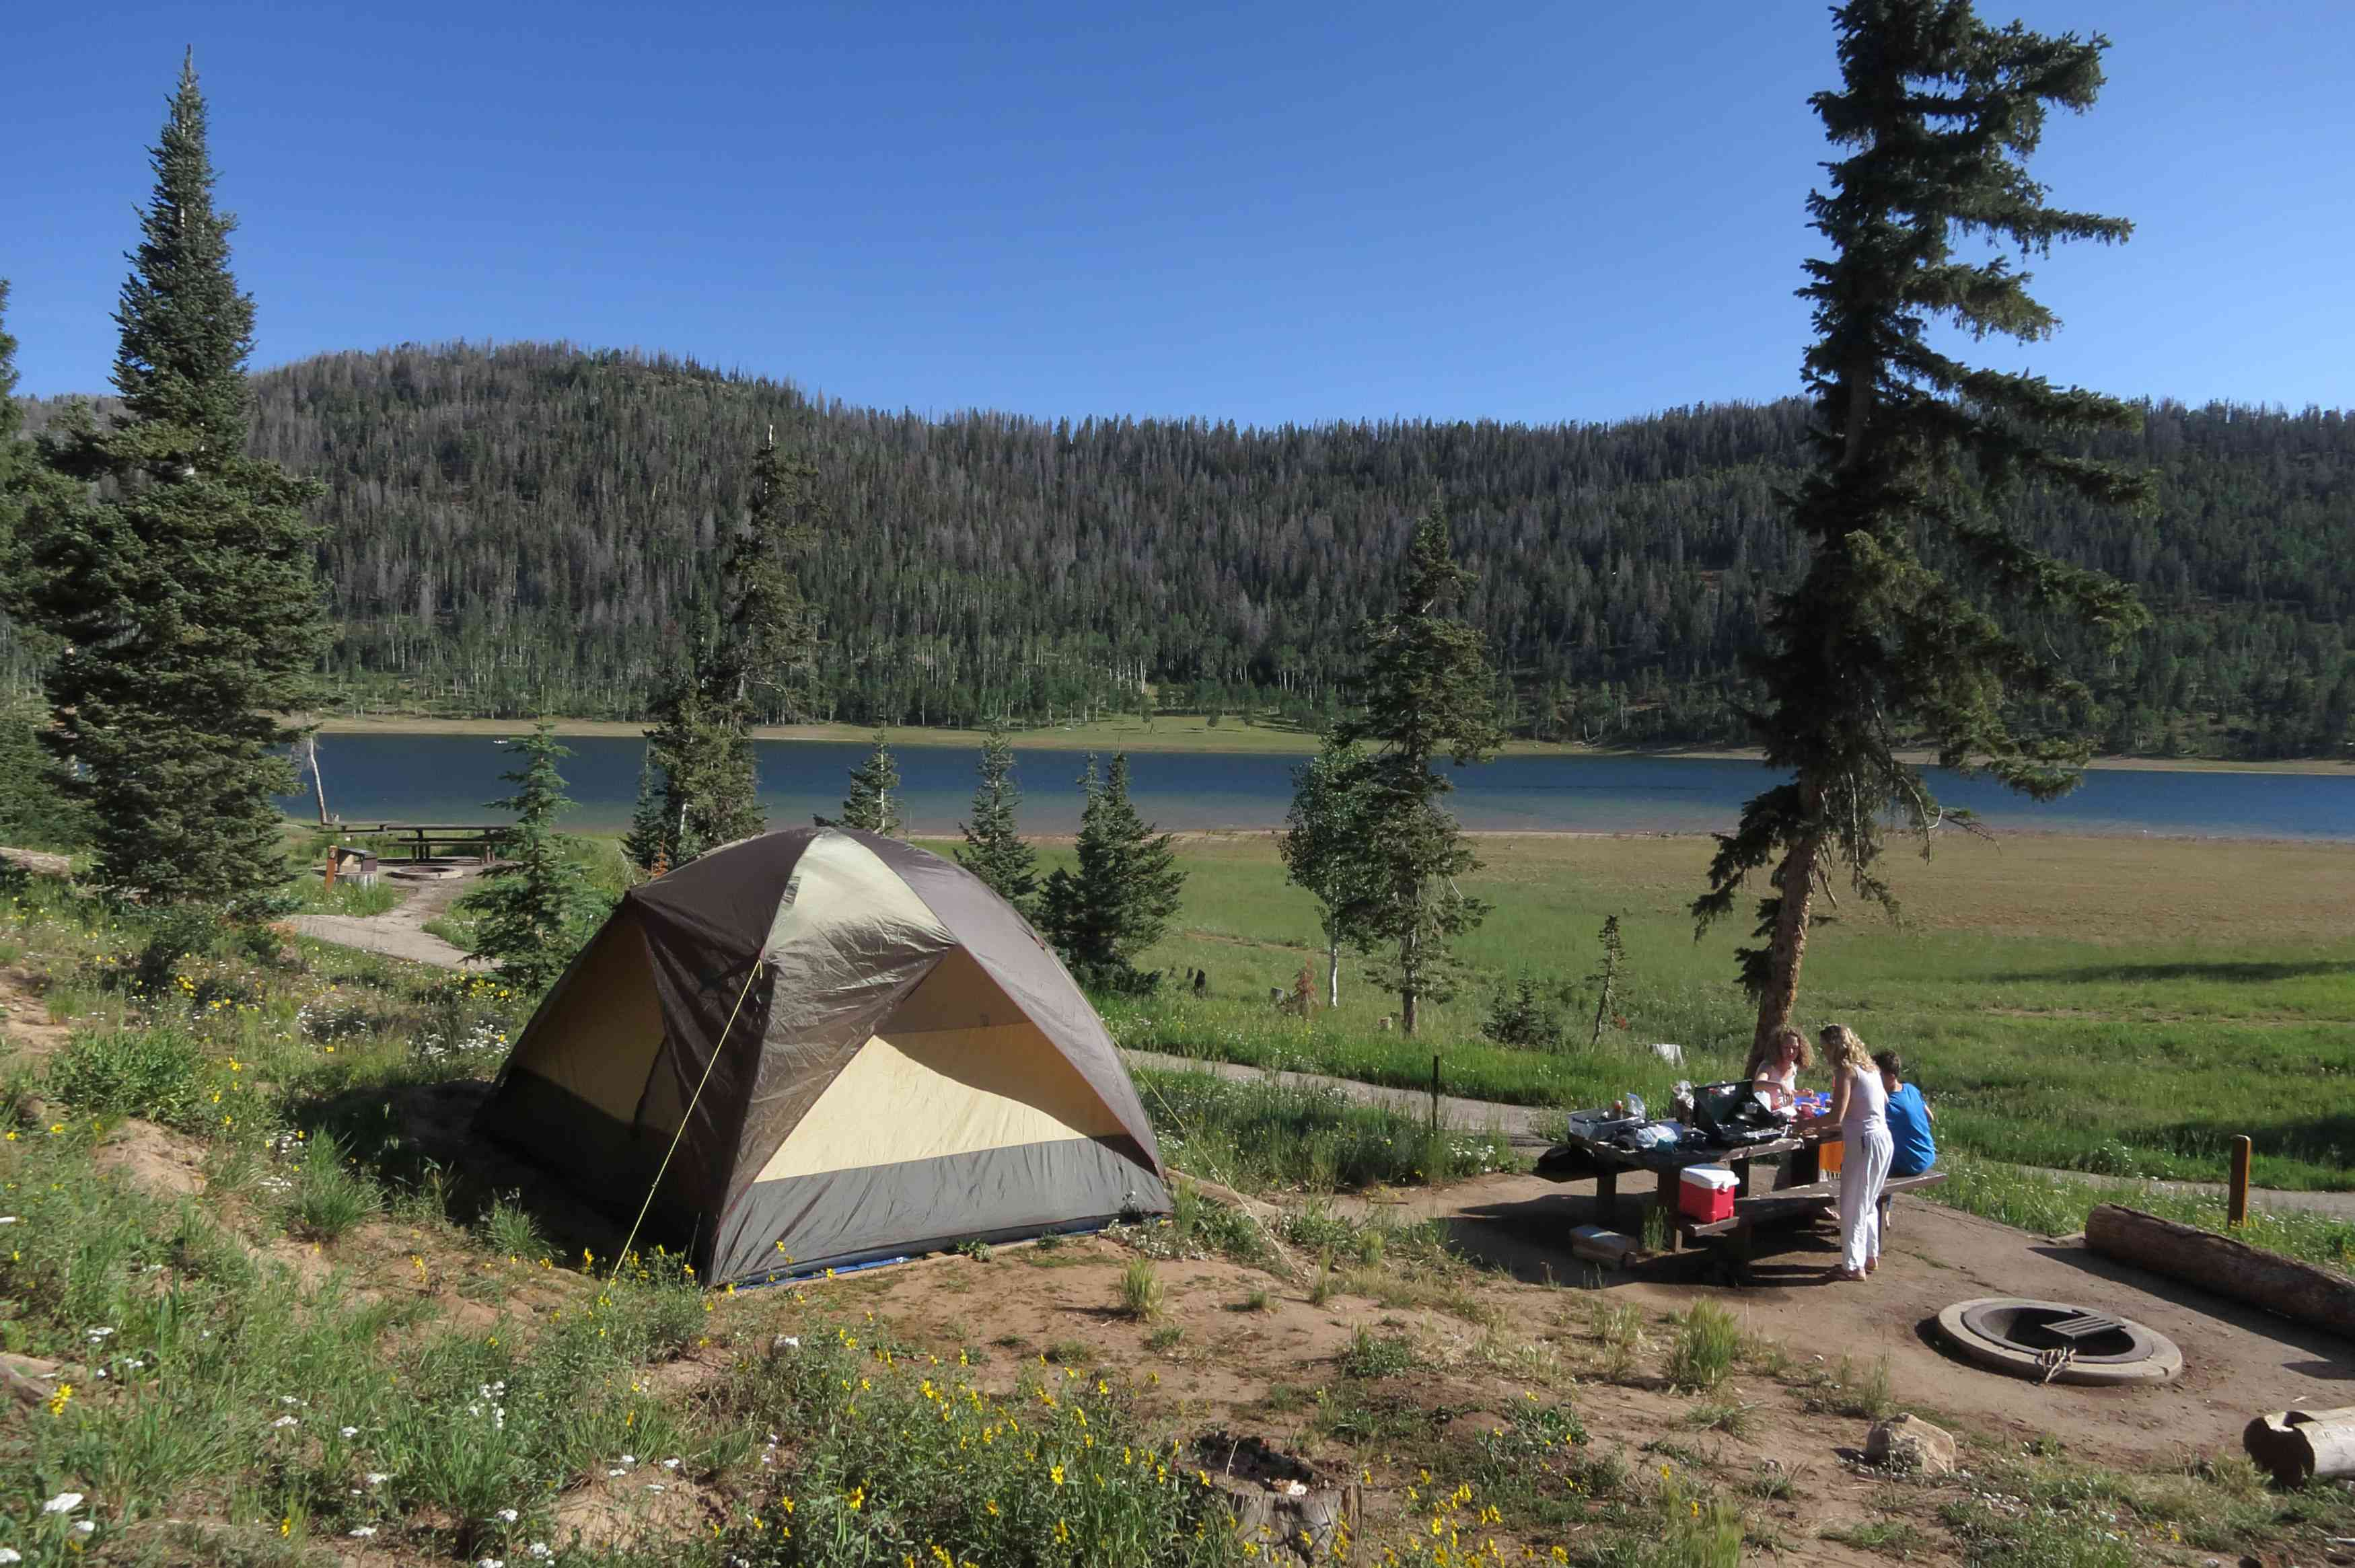 Family with a tent camping near a lake